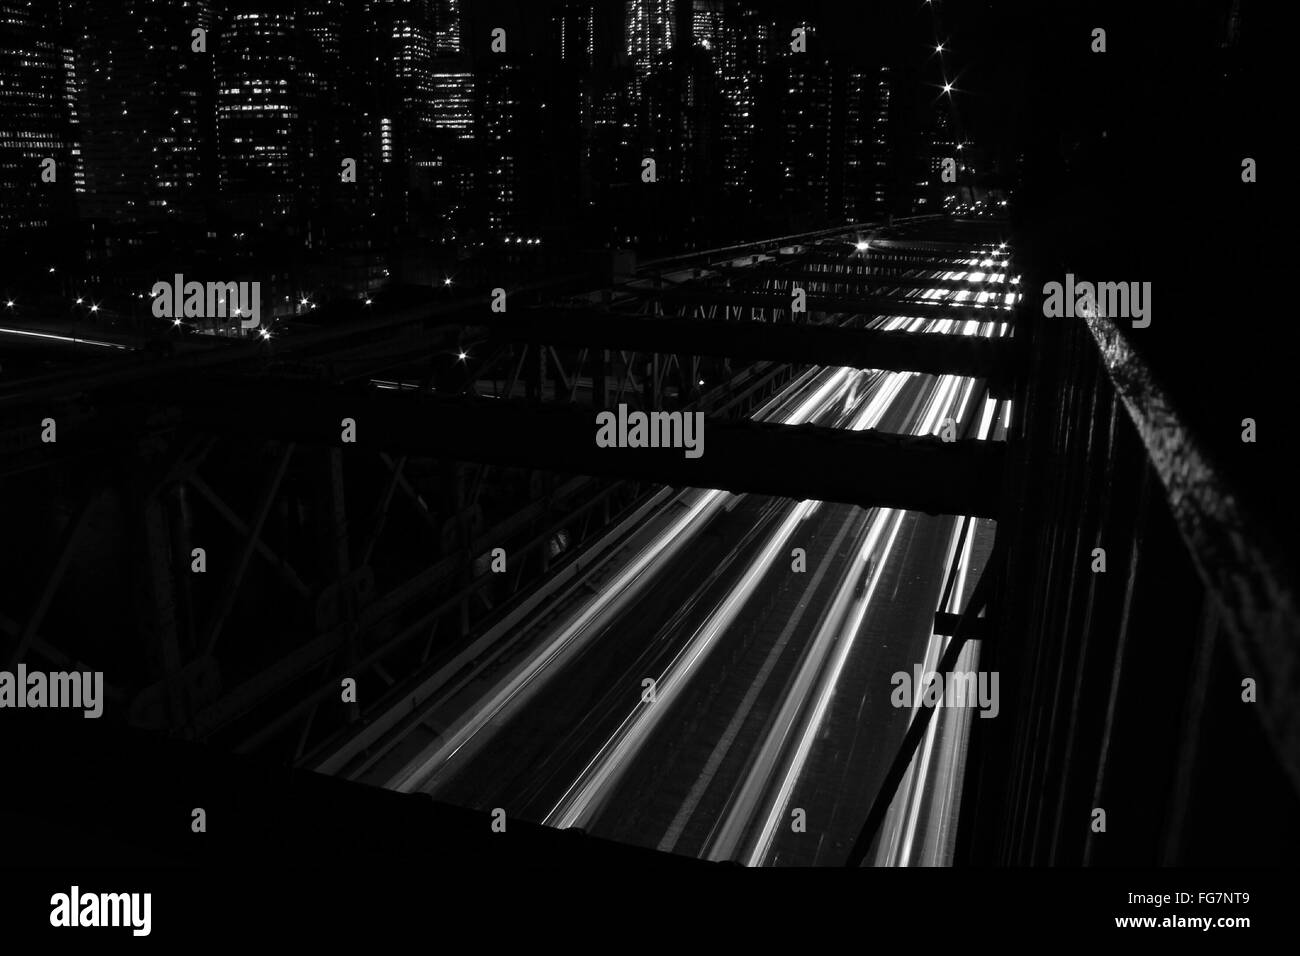 High Angle View Of Light Trails At Night - Stock Image